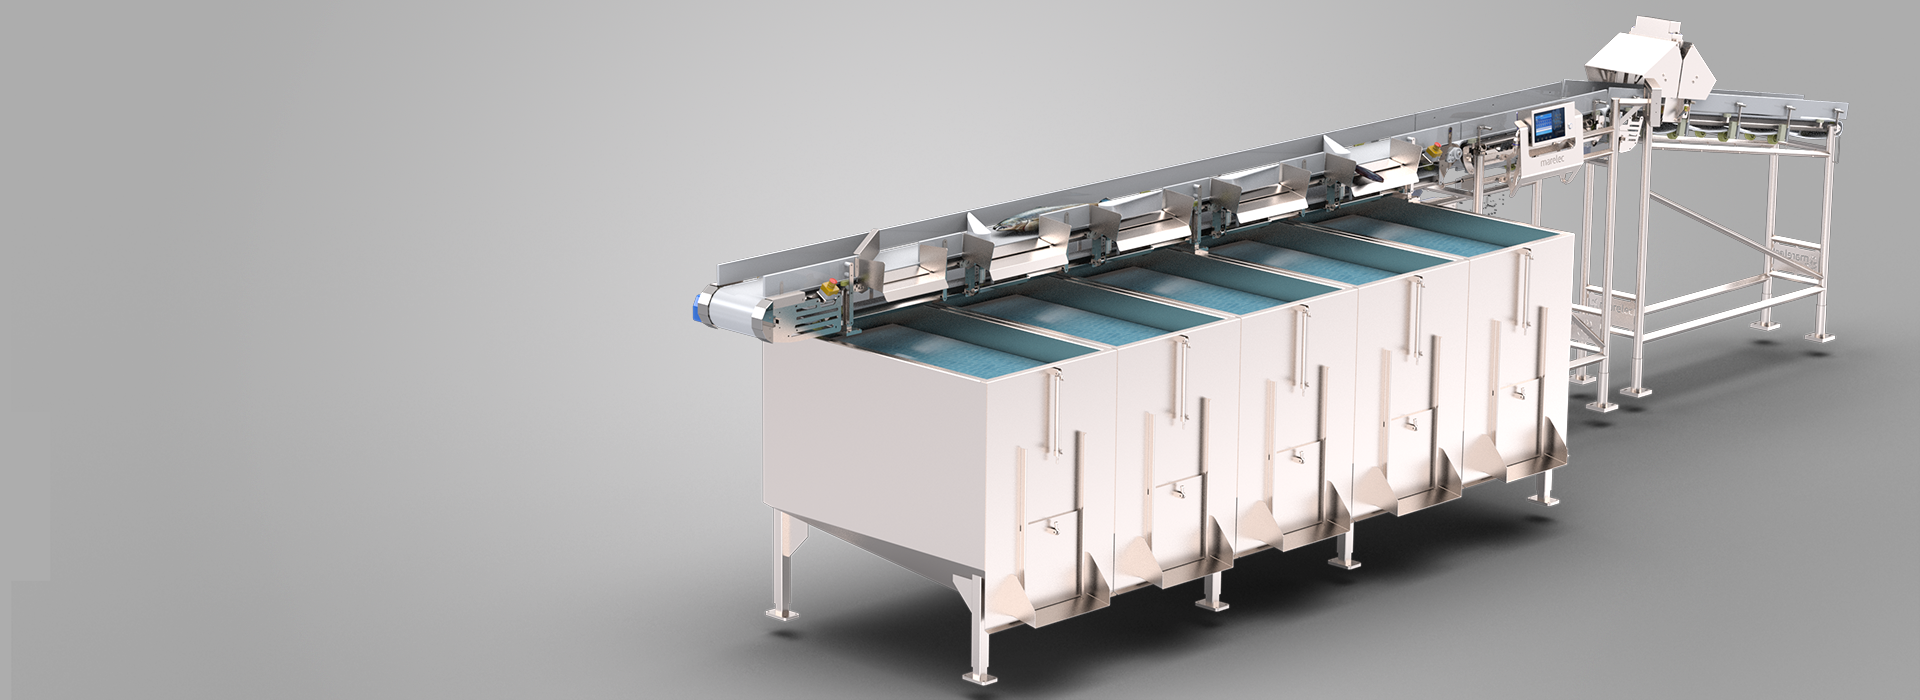 The MARELEC I Vision uses an intelligent algorithm to recognize different species of fish.